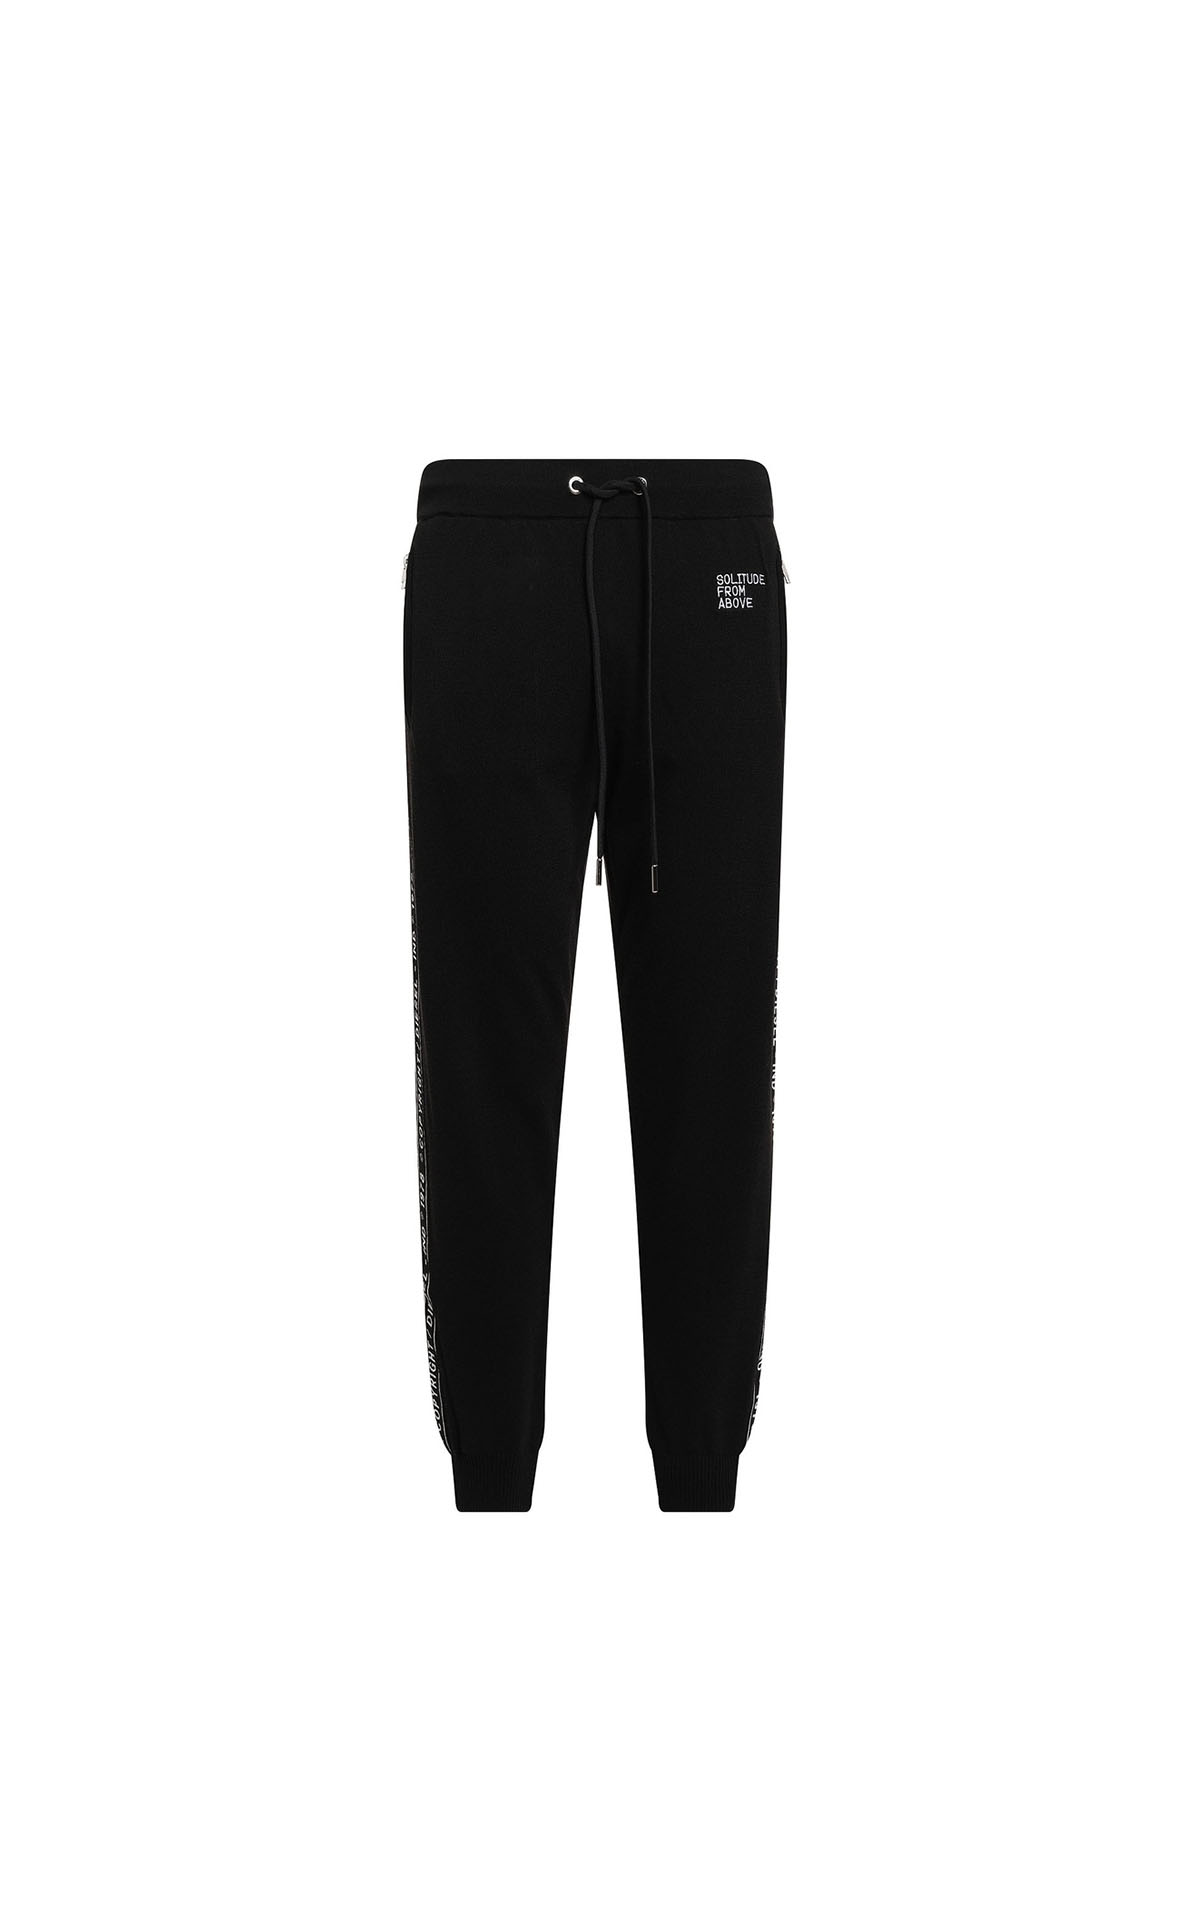 Diesel vanise-knit sweatpants with logo bands at The Bicester Village Shopping Collection